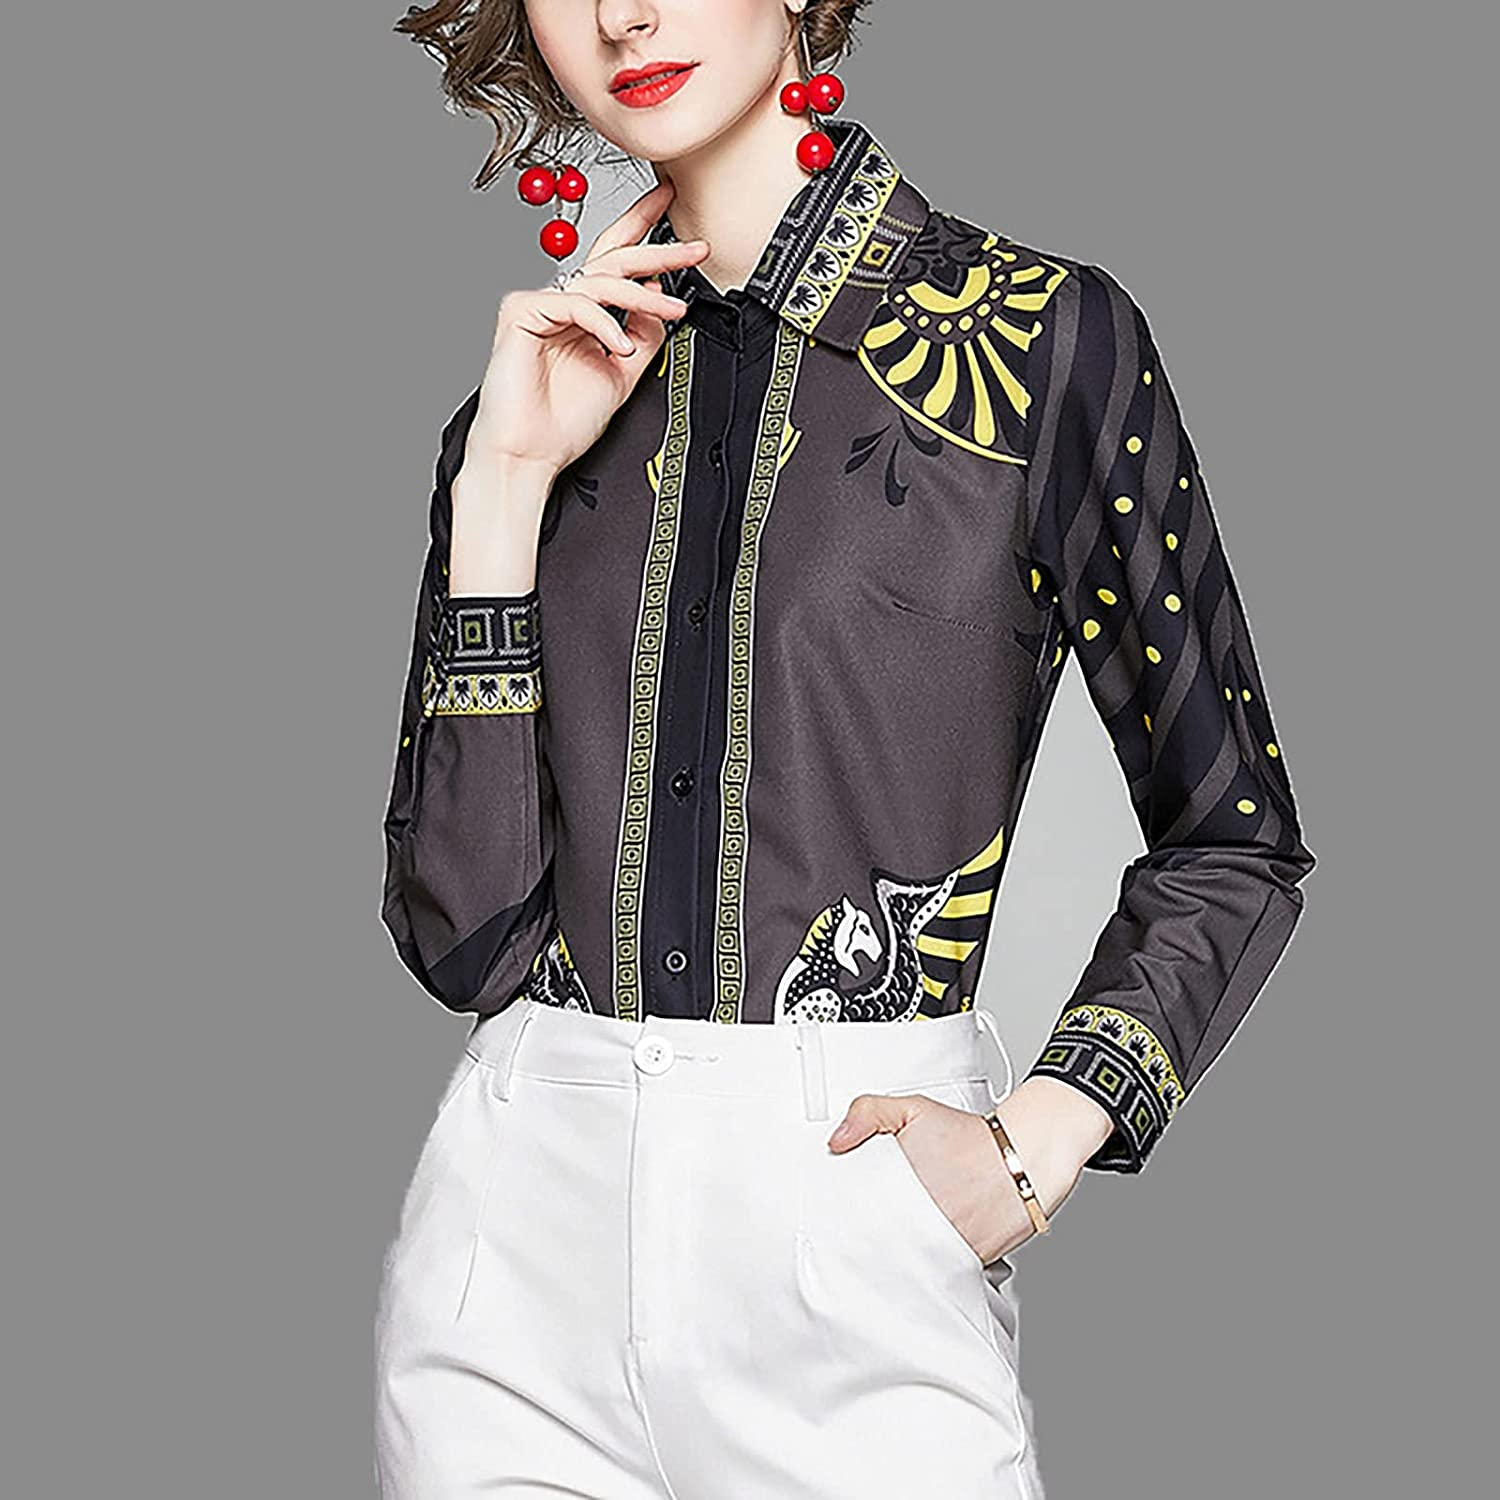 LEXUPA Cardigans/Sweaters/Pullovers/Hoodies Women Long-Sleeved Lapel Plaid Printed Cardigan Single-Breasted Bottoming Shirt